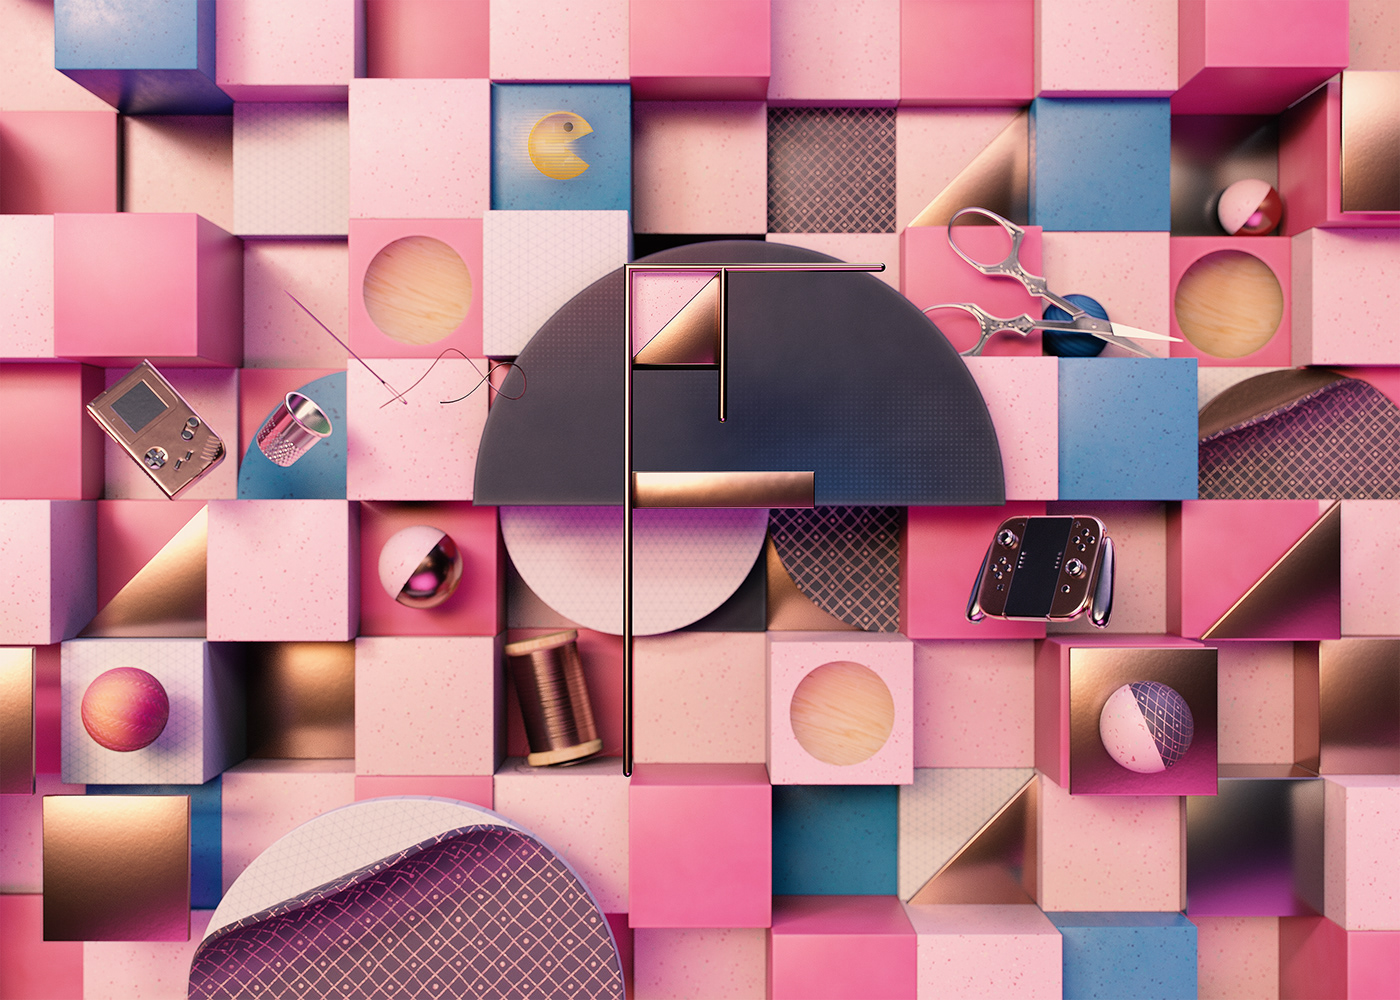 36daysoftype cinema4d dailyrender geom geometric inspiration letters Render type typography